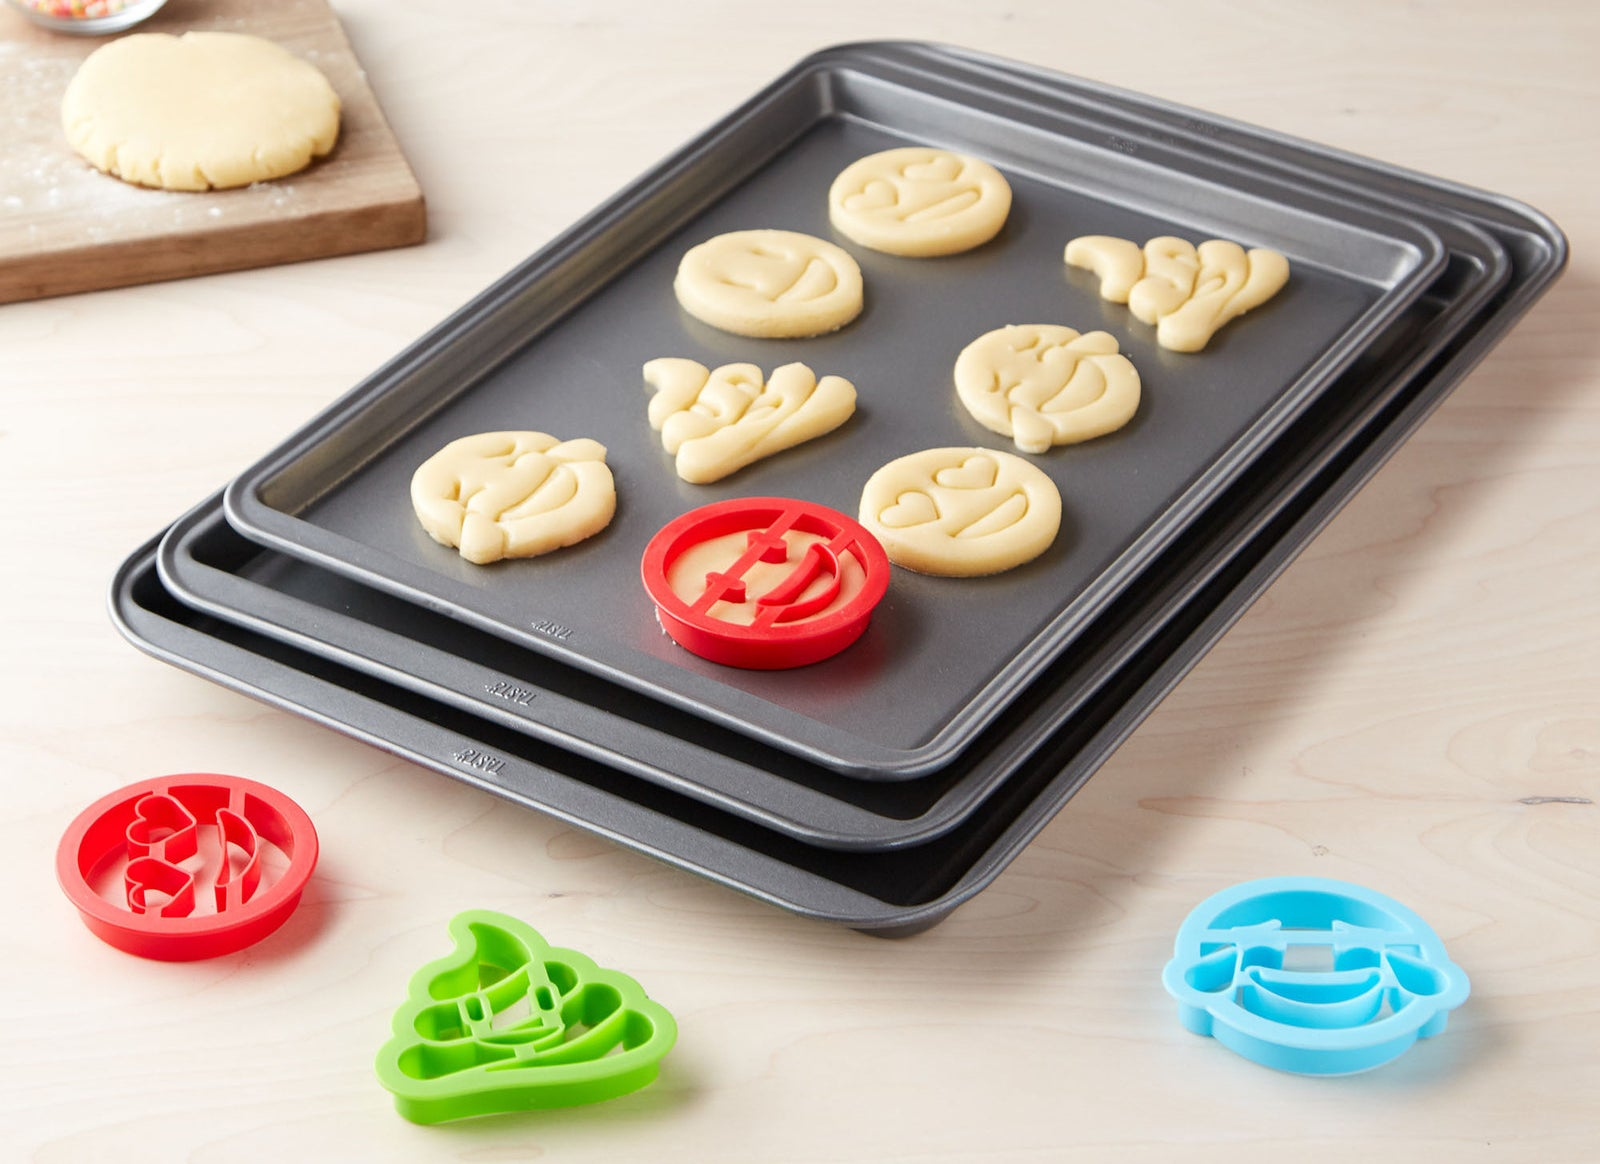 Set includes one small cookie sheet, one medium cookie sheet, one large cookie sheet, and four emoji cookie cutters. Carbon steel pans mean your cookies will bake and brown easily. These are made with non-stick coating and are BPA- and PFOA-free. Plus, they're dishwasher-safe!Get them from BuzzFeed's Tasty line, exclusively at Walmart for $8.97 (originally $13.99).